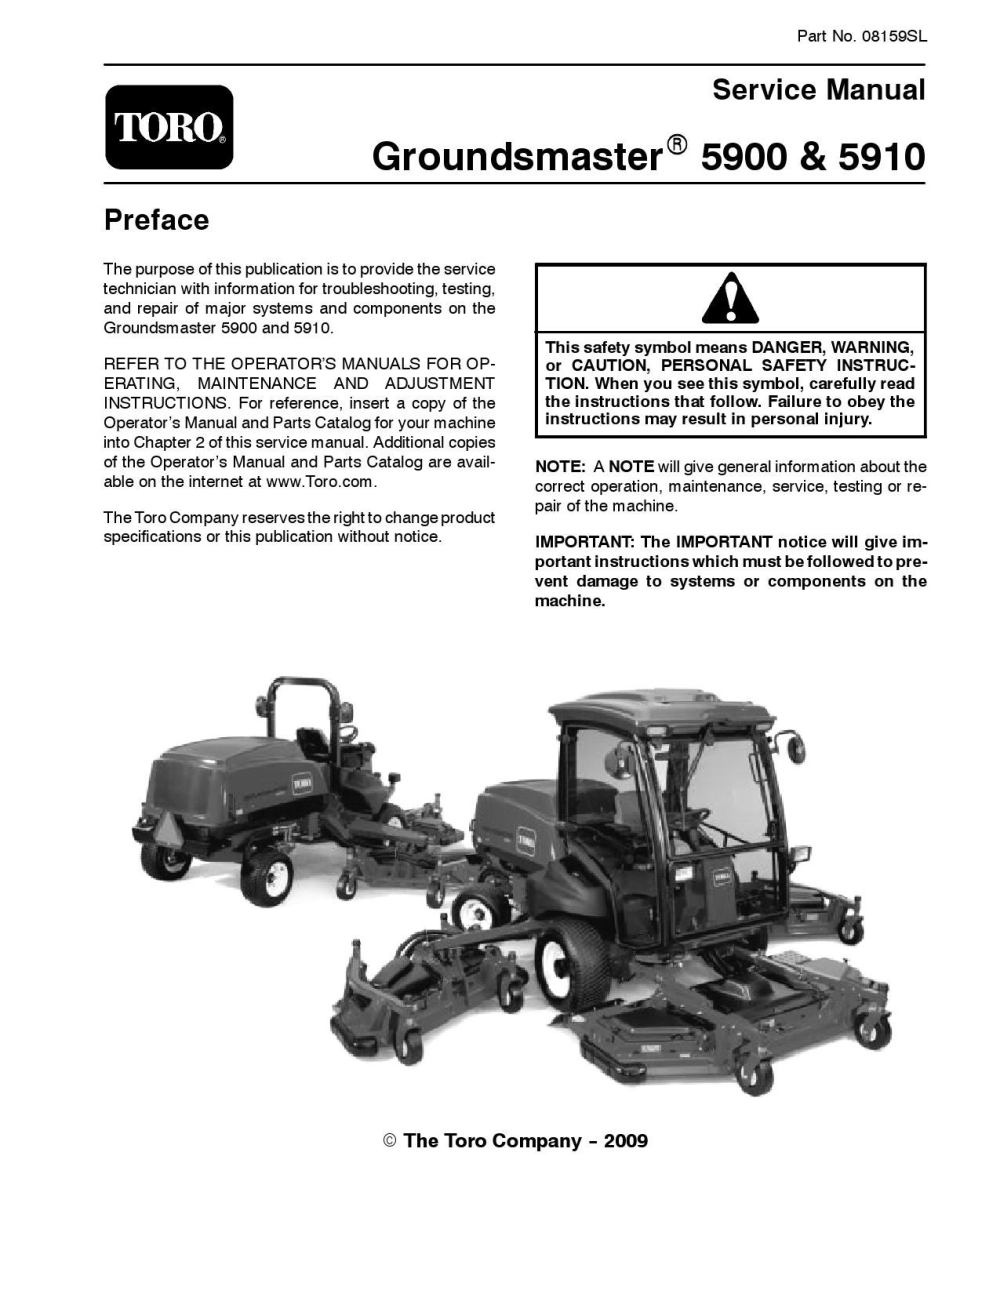 medium resolution of 08159sl pdf groundsmaster 5900 5910 jan 2009 new by negimachi negimachi issuu